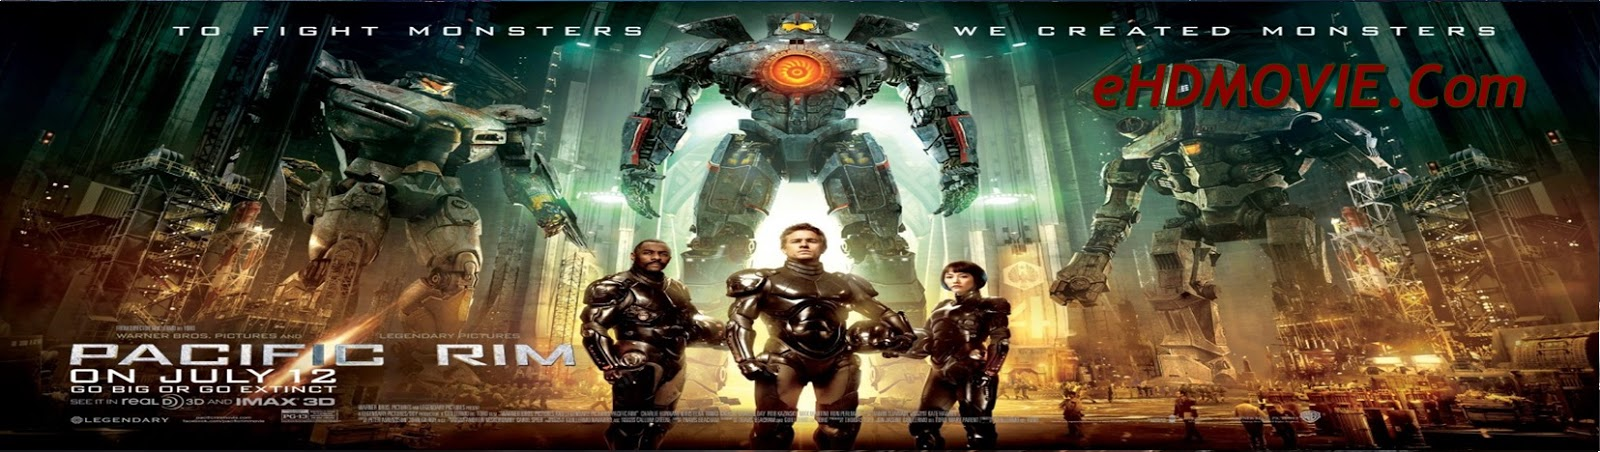 Pacific Rim 2013 Full Movie Dual Audio [Hindi – English] 1080p - 720p - 480p ORG BRRip 400MB - 1GB - 2GB ESubs Free Download